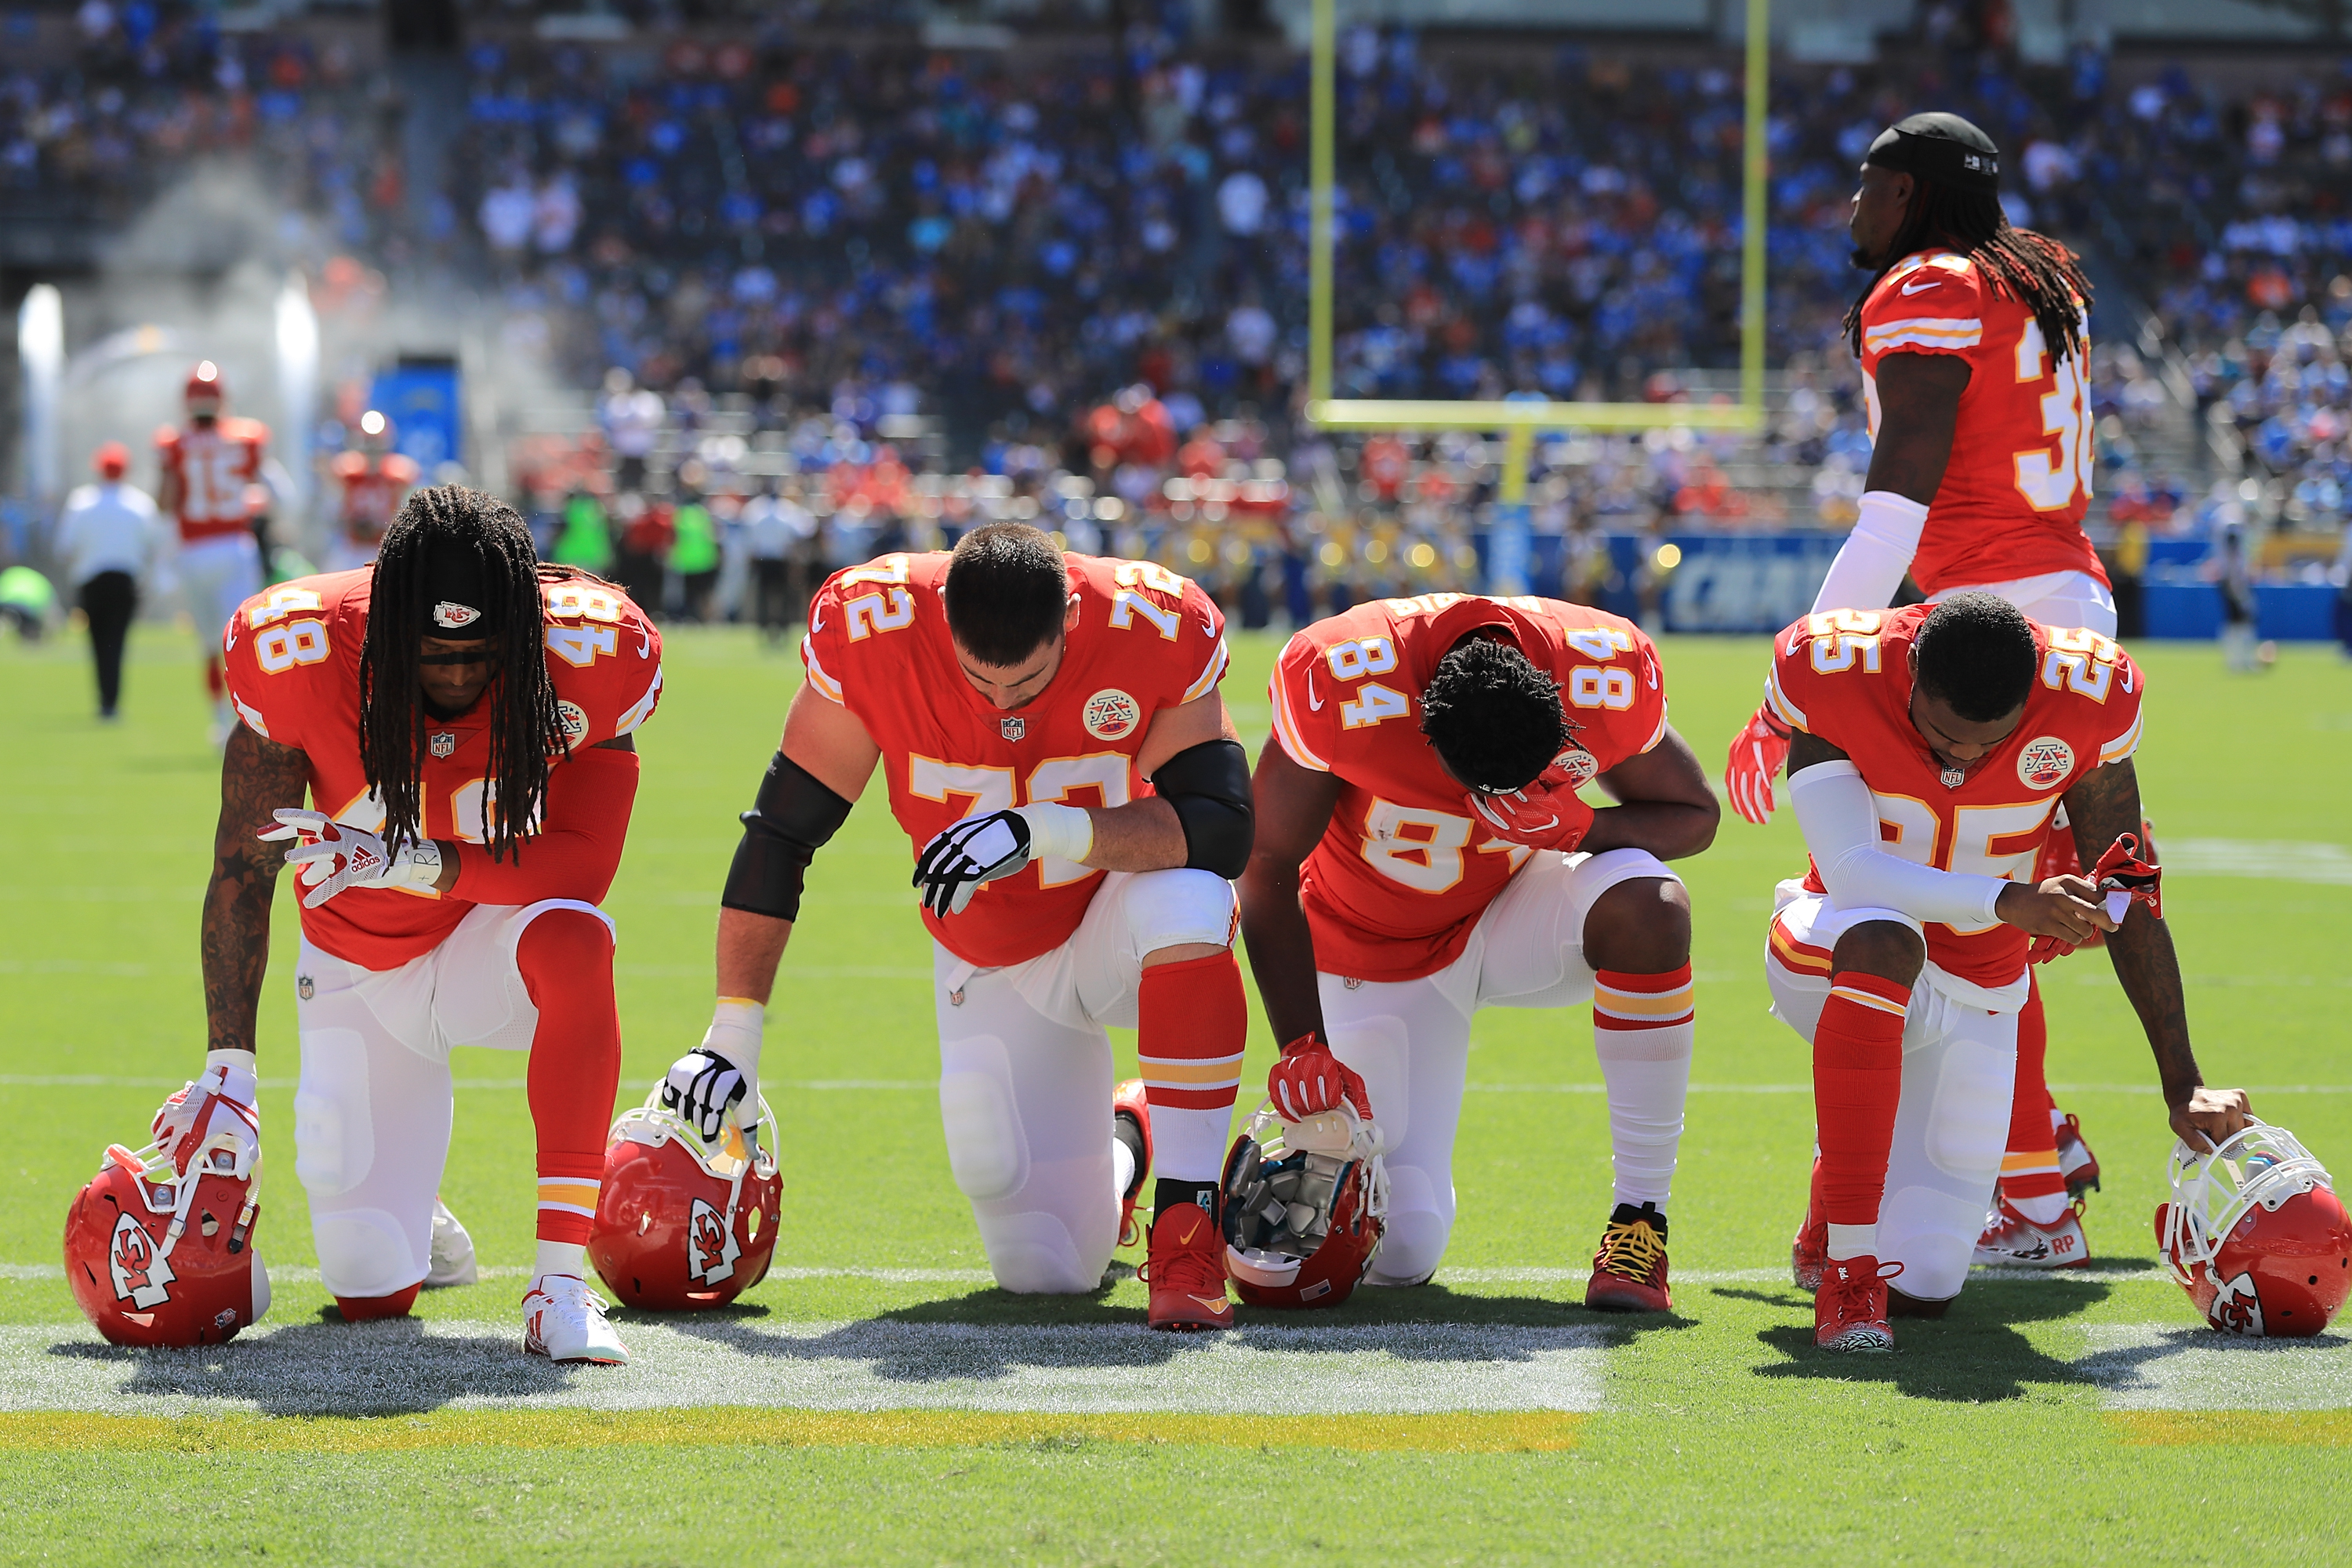 Football players Terrance Smith #48, Eric Fisher #72, Demetrius Harris #84, and Cameron Erving #75 of the Kansas City Chiefs is seen taking a knee before the game against the Los Angeles Chargers at the StubHub Center on September 24, 2017 in Carson, California.